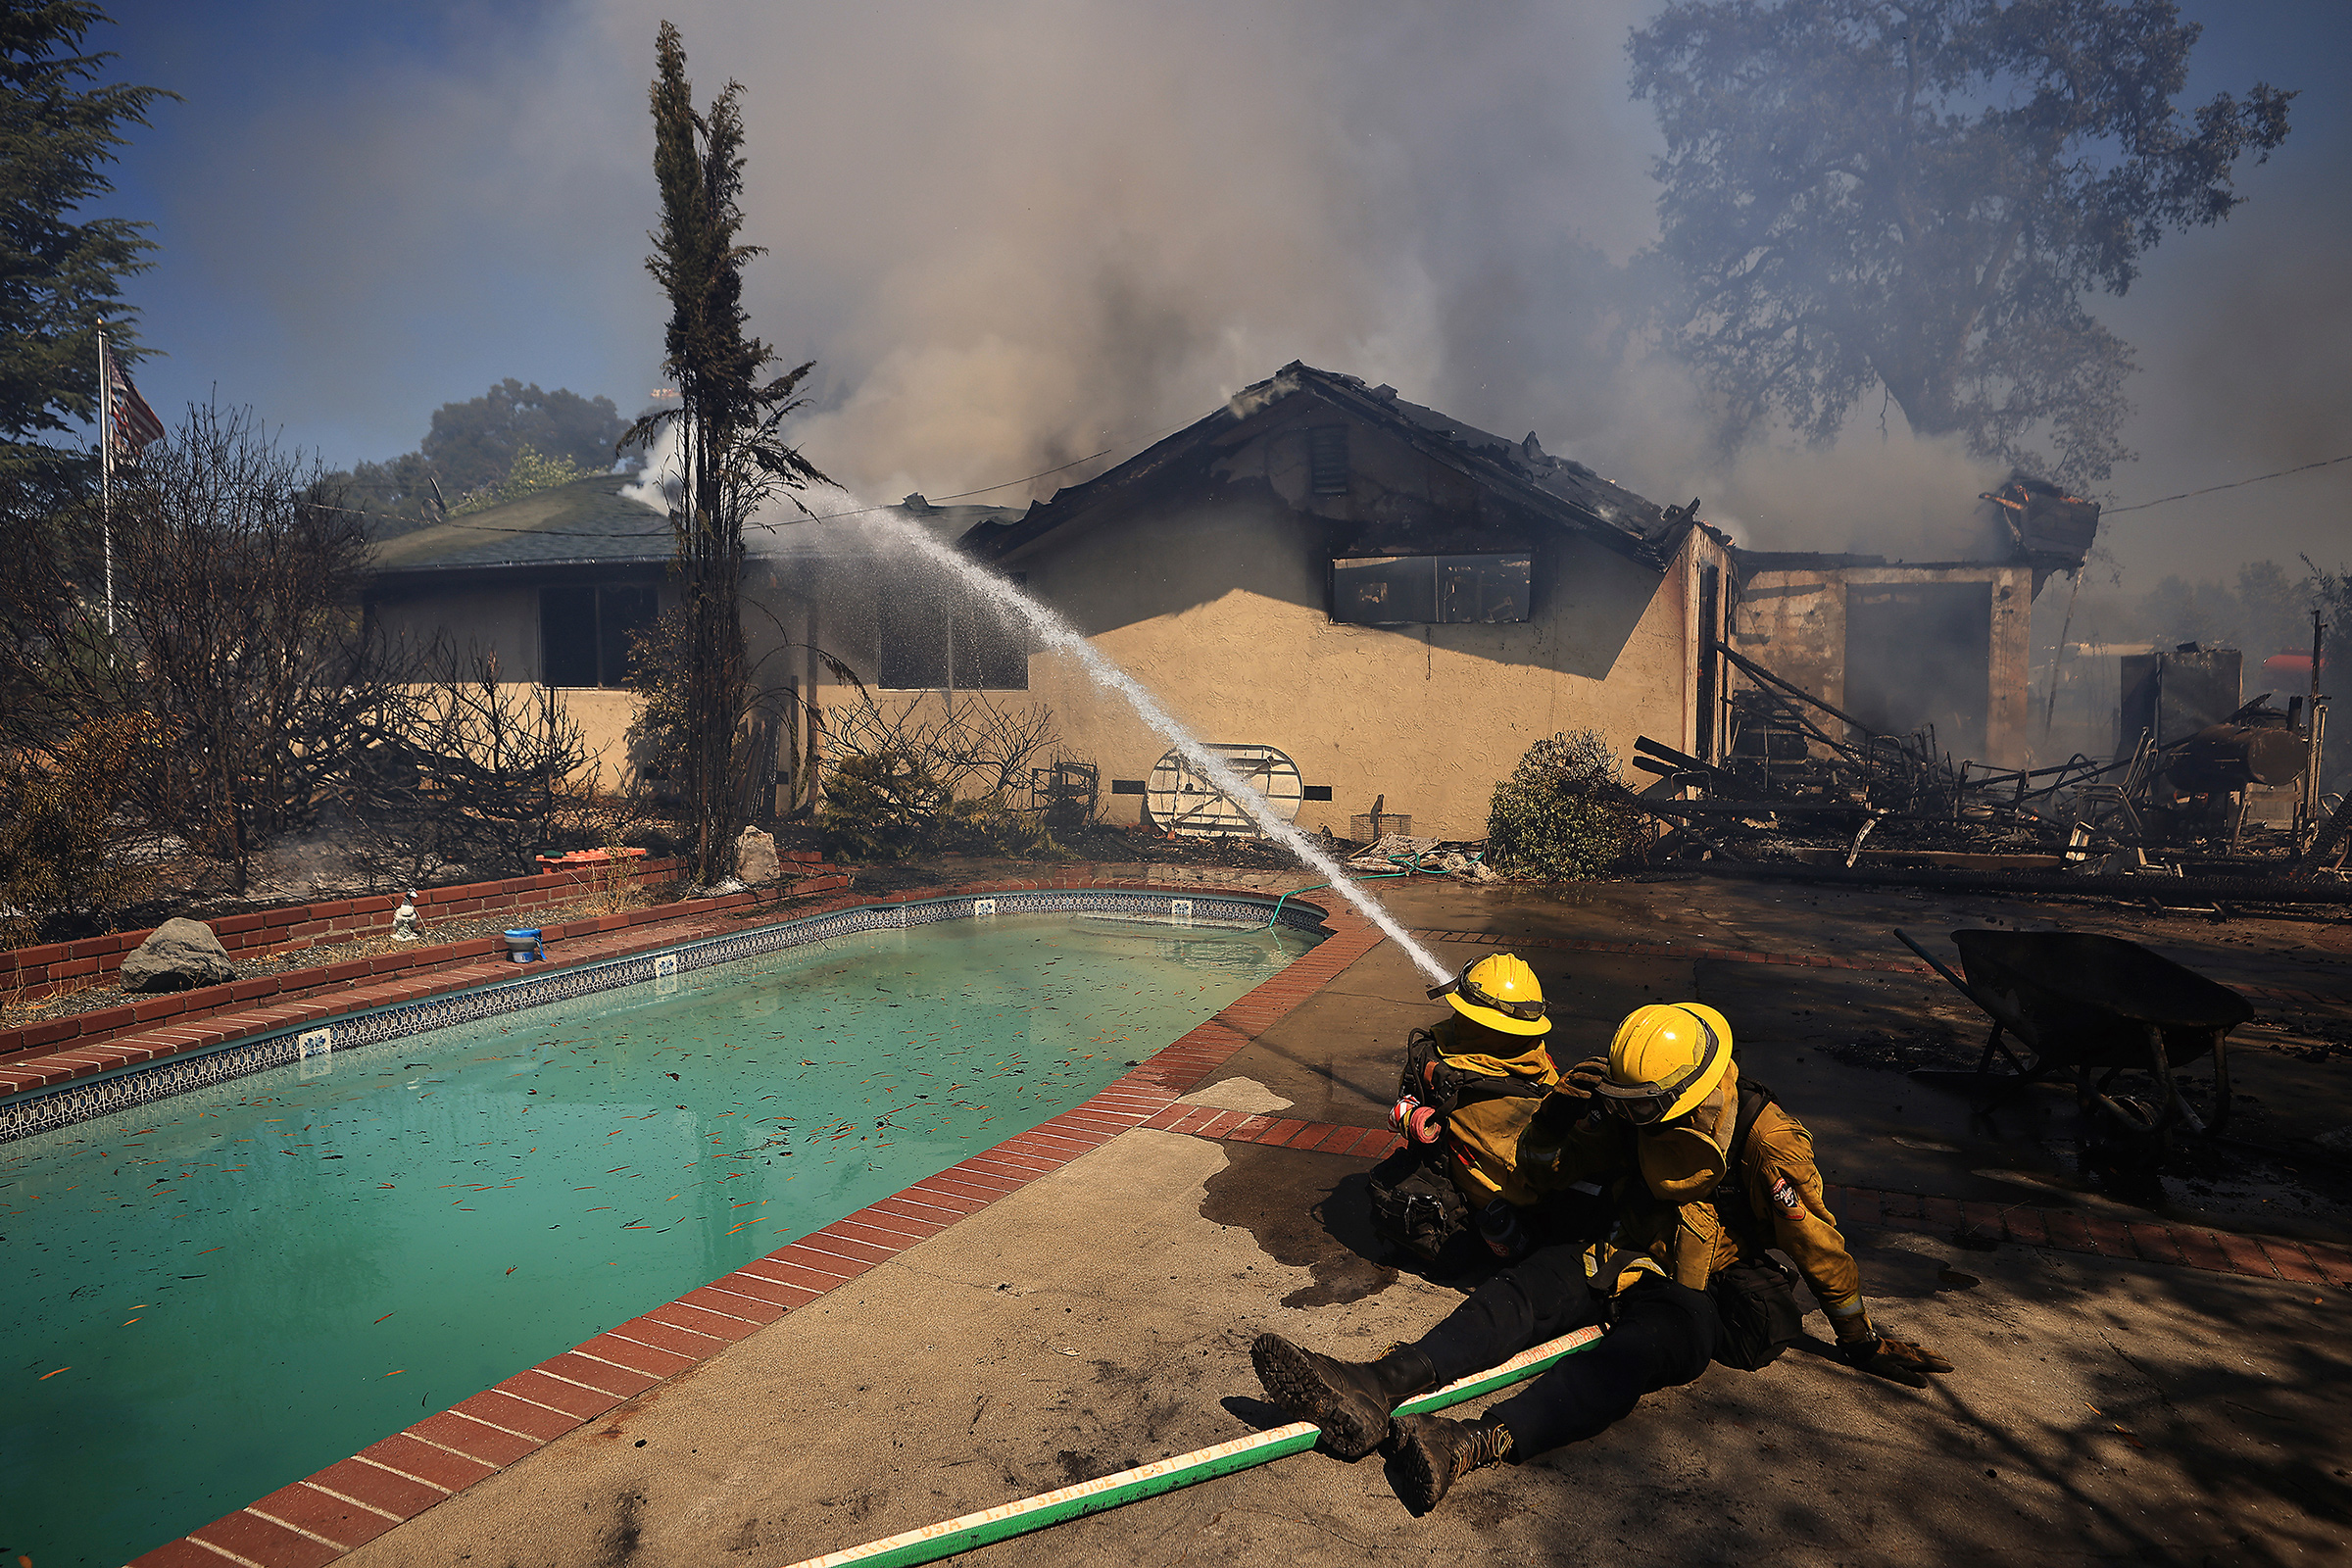 Firefighters take a defensive stand against a home burning in Redwood Valley, Calif., ignited by an 80 acre wind whipped brush fire fed by tinder dry conditions on July 7.